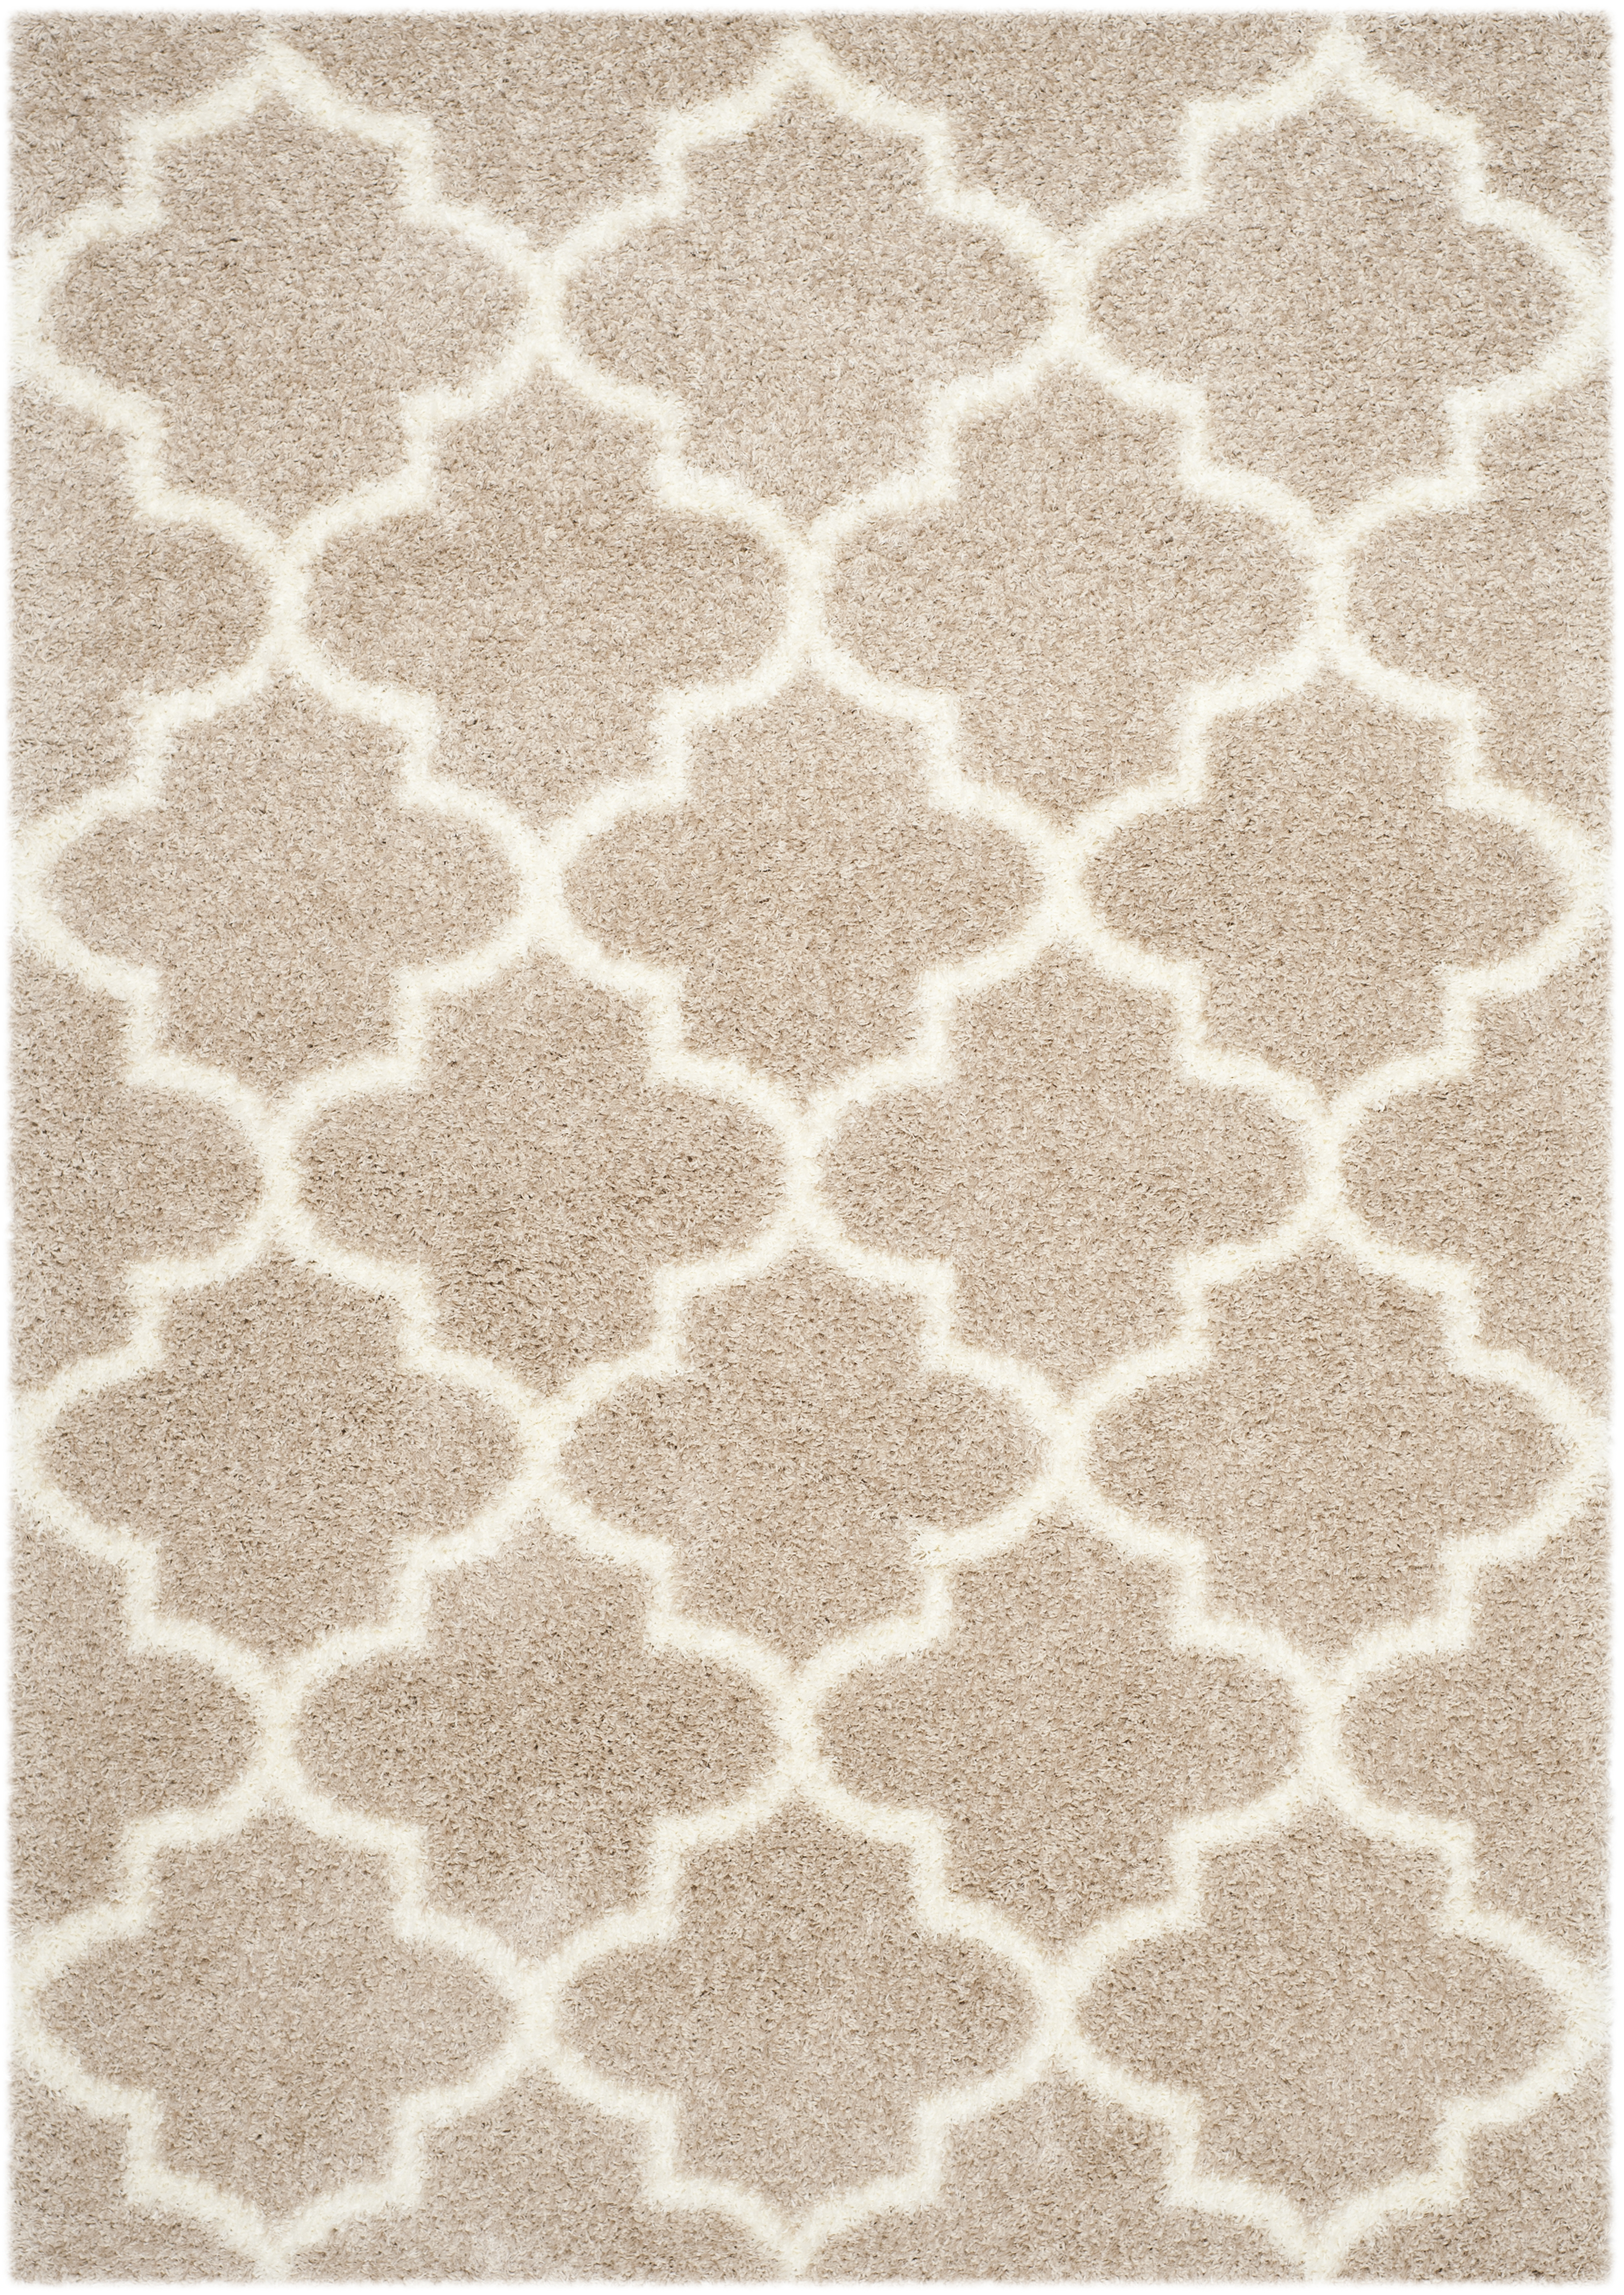 decor room rugs shag modern red idea taupe living brown furry rug interor ivory ikea your floors purple for white beautiful fabulous